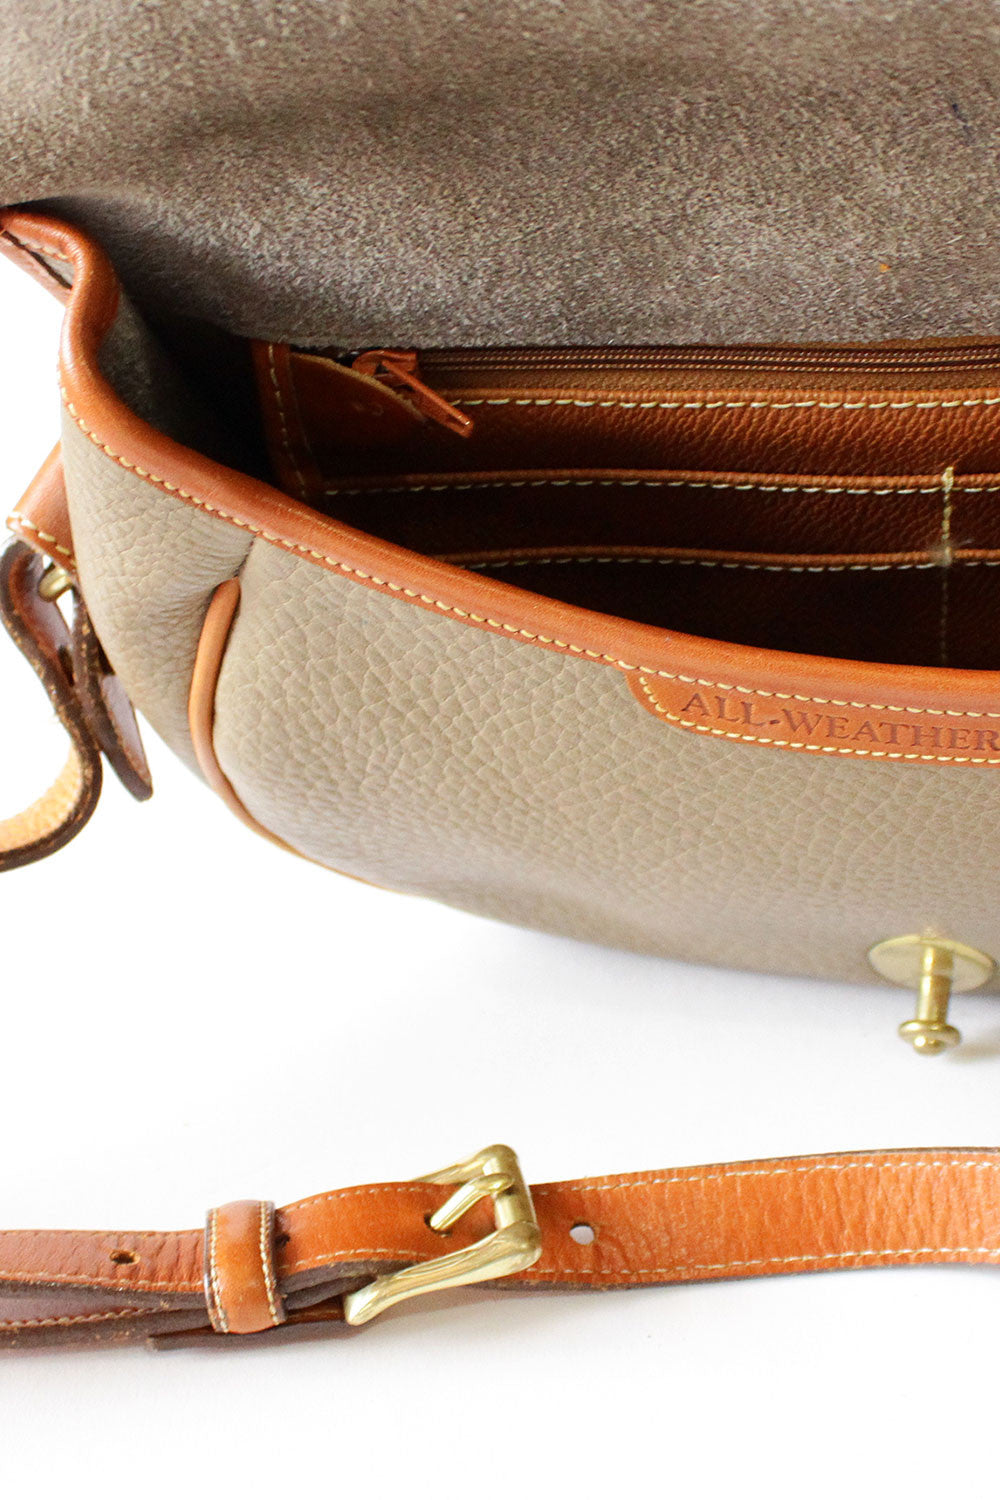 Dooney & Bourke Taupe Saddle Bag